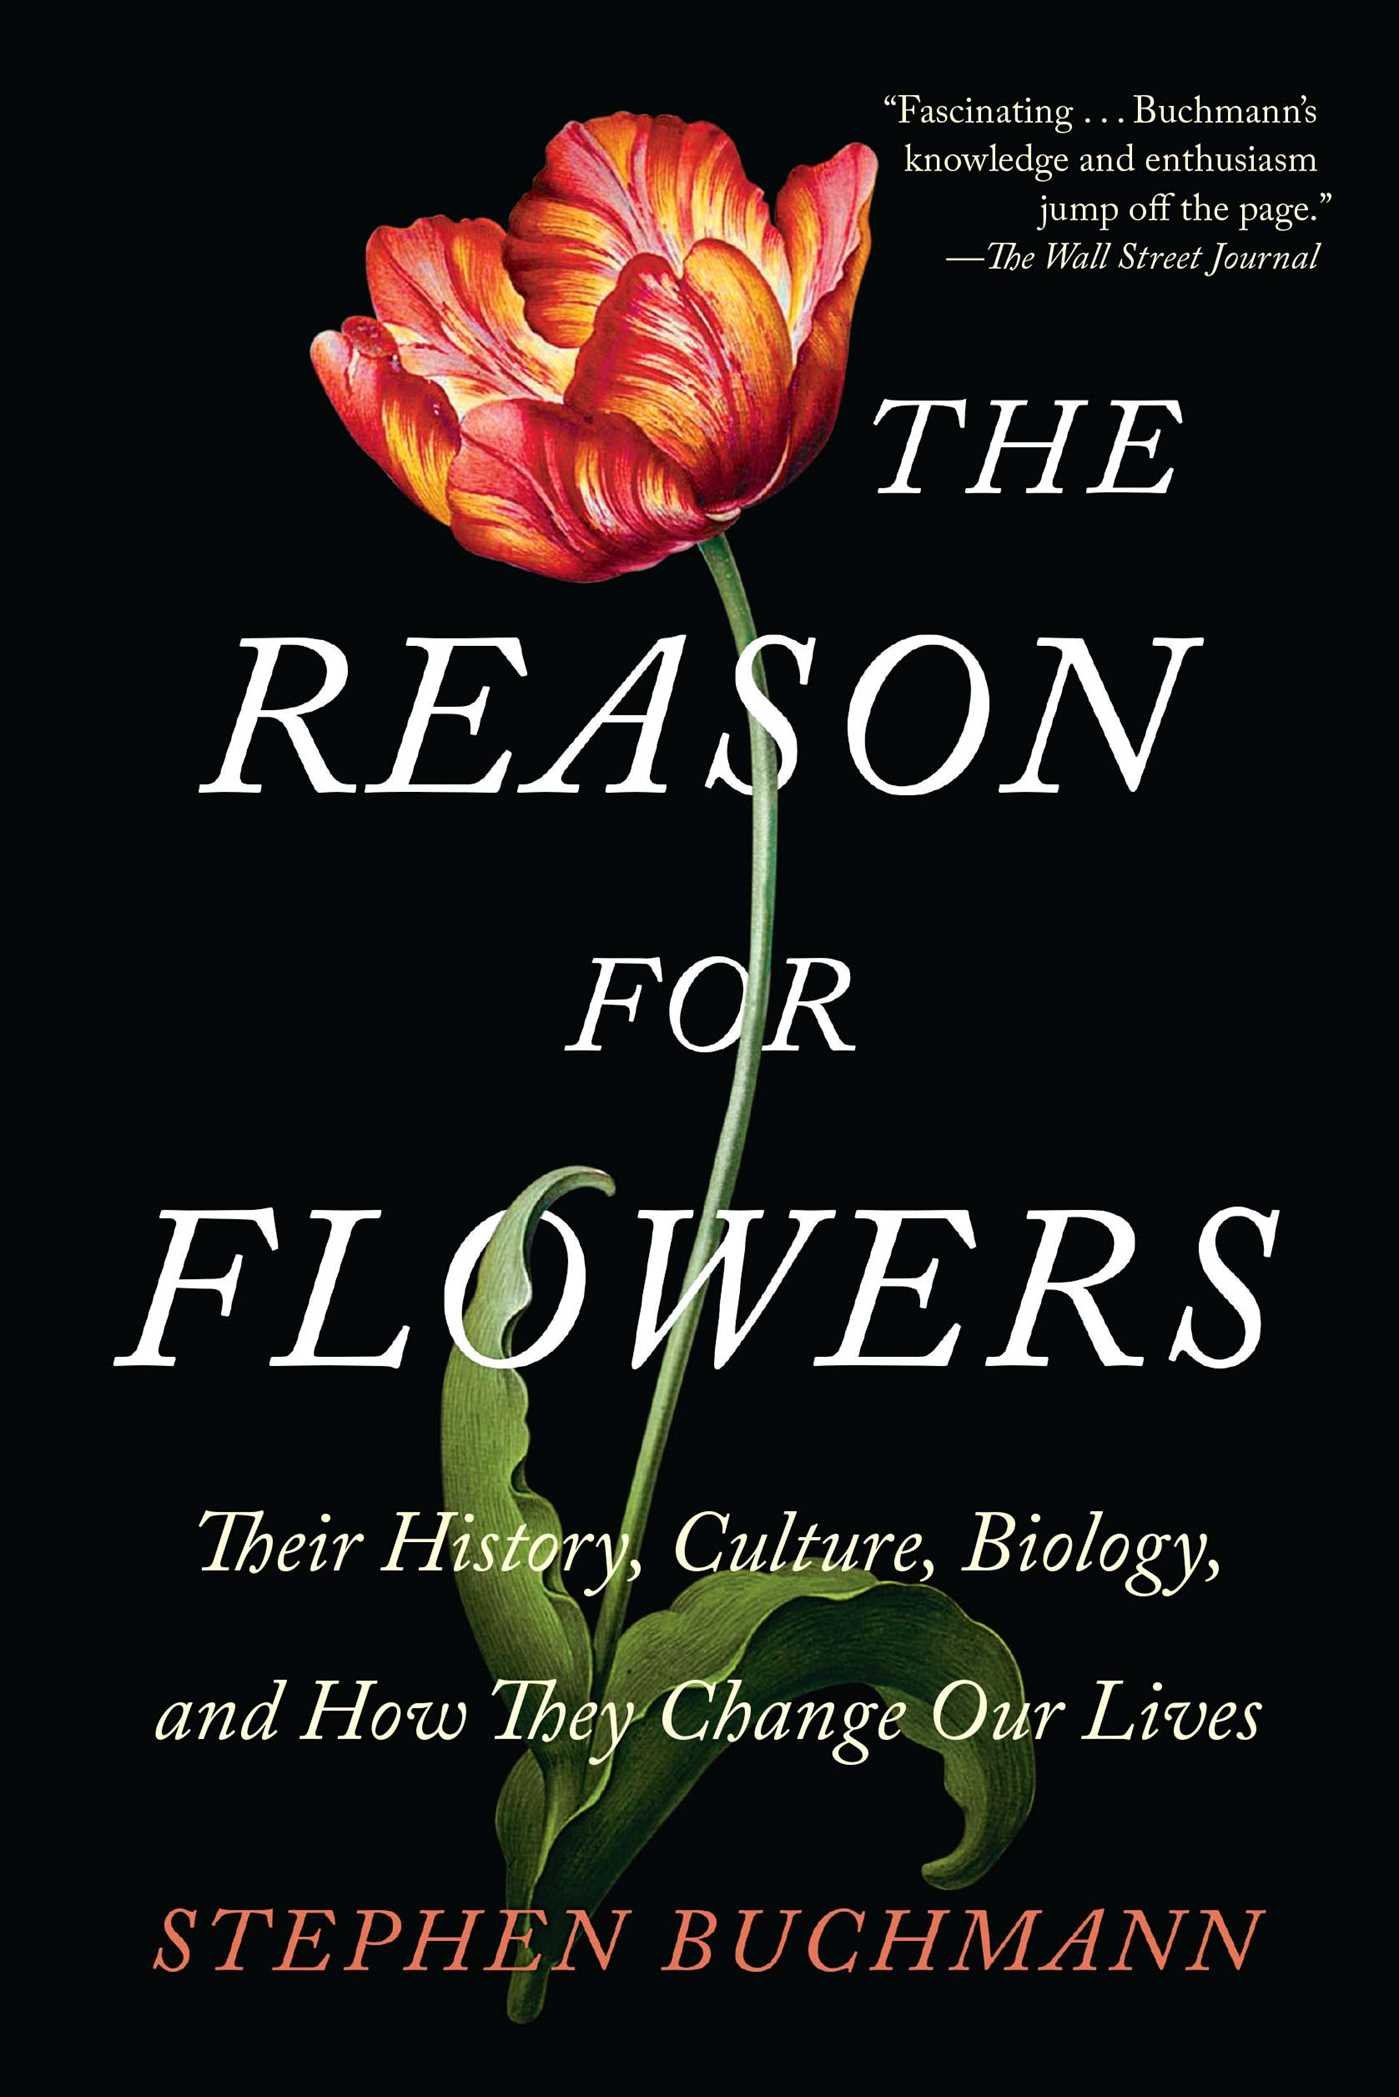 The reason for flowers their history culture biology and how the reason for flowers their history culture biology and how they change our lives stephen buchmann 9781476755533 amazon books fandeluxe Images